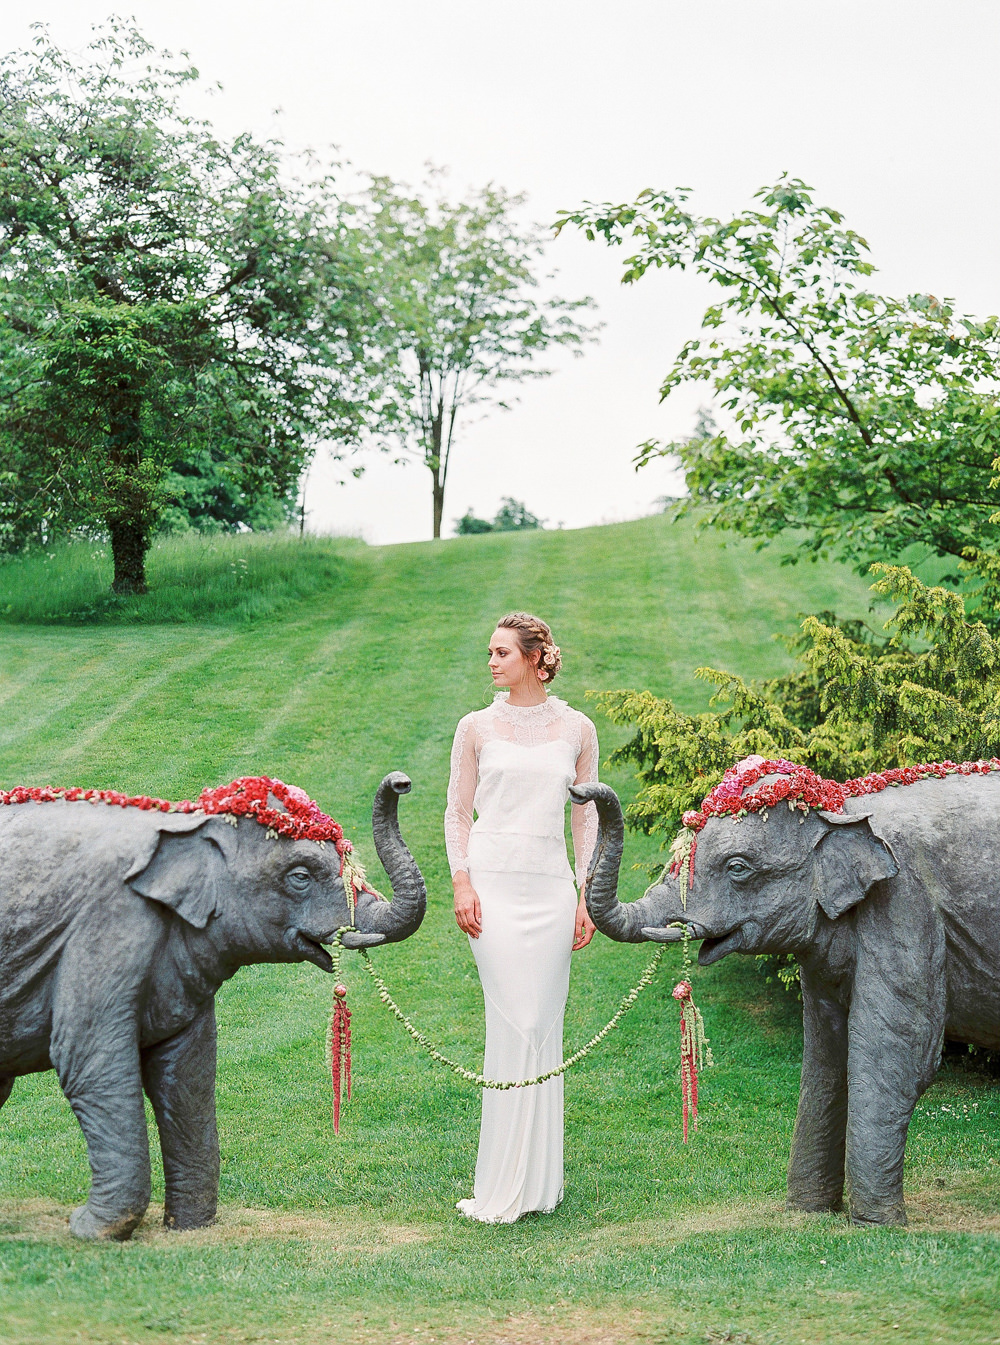 Bride with floral decorated elephants